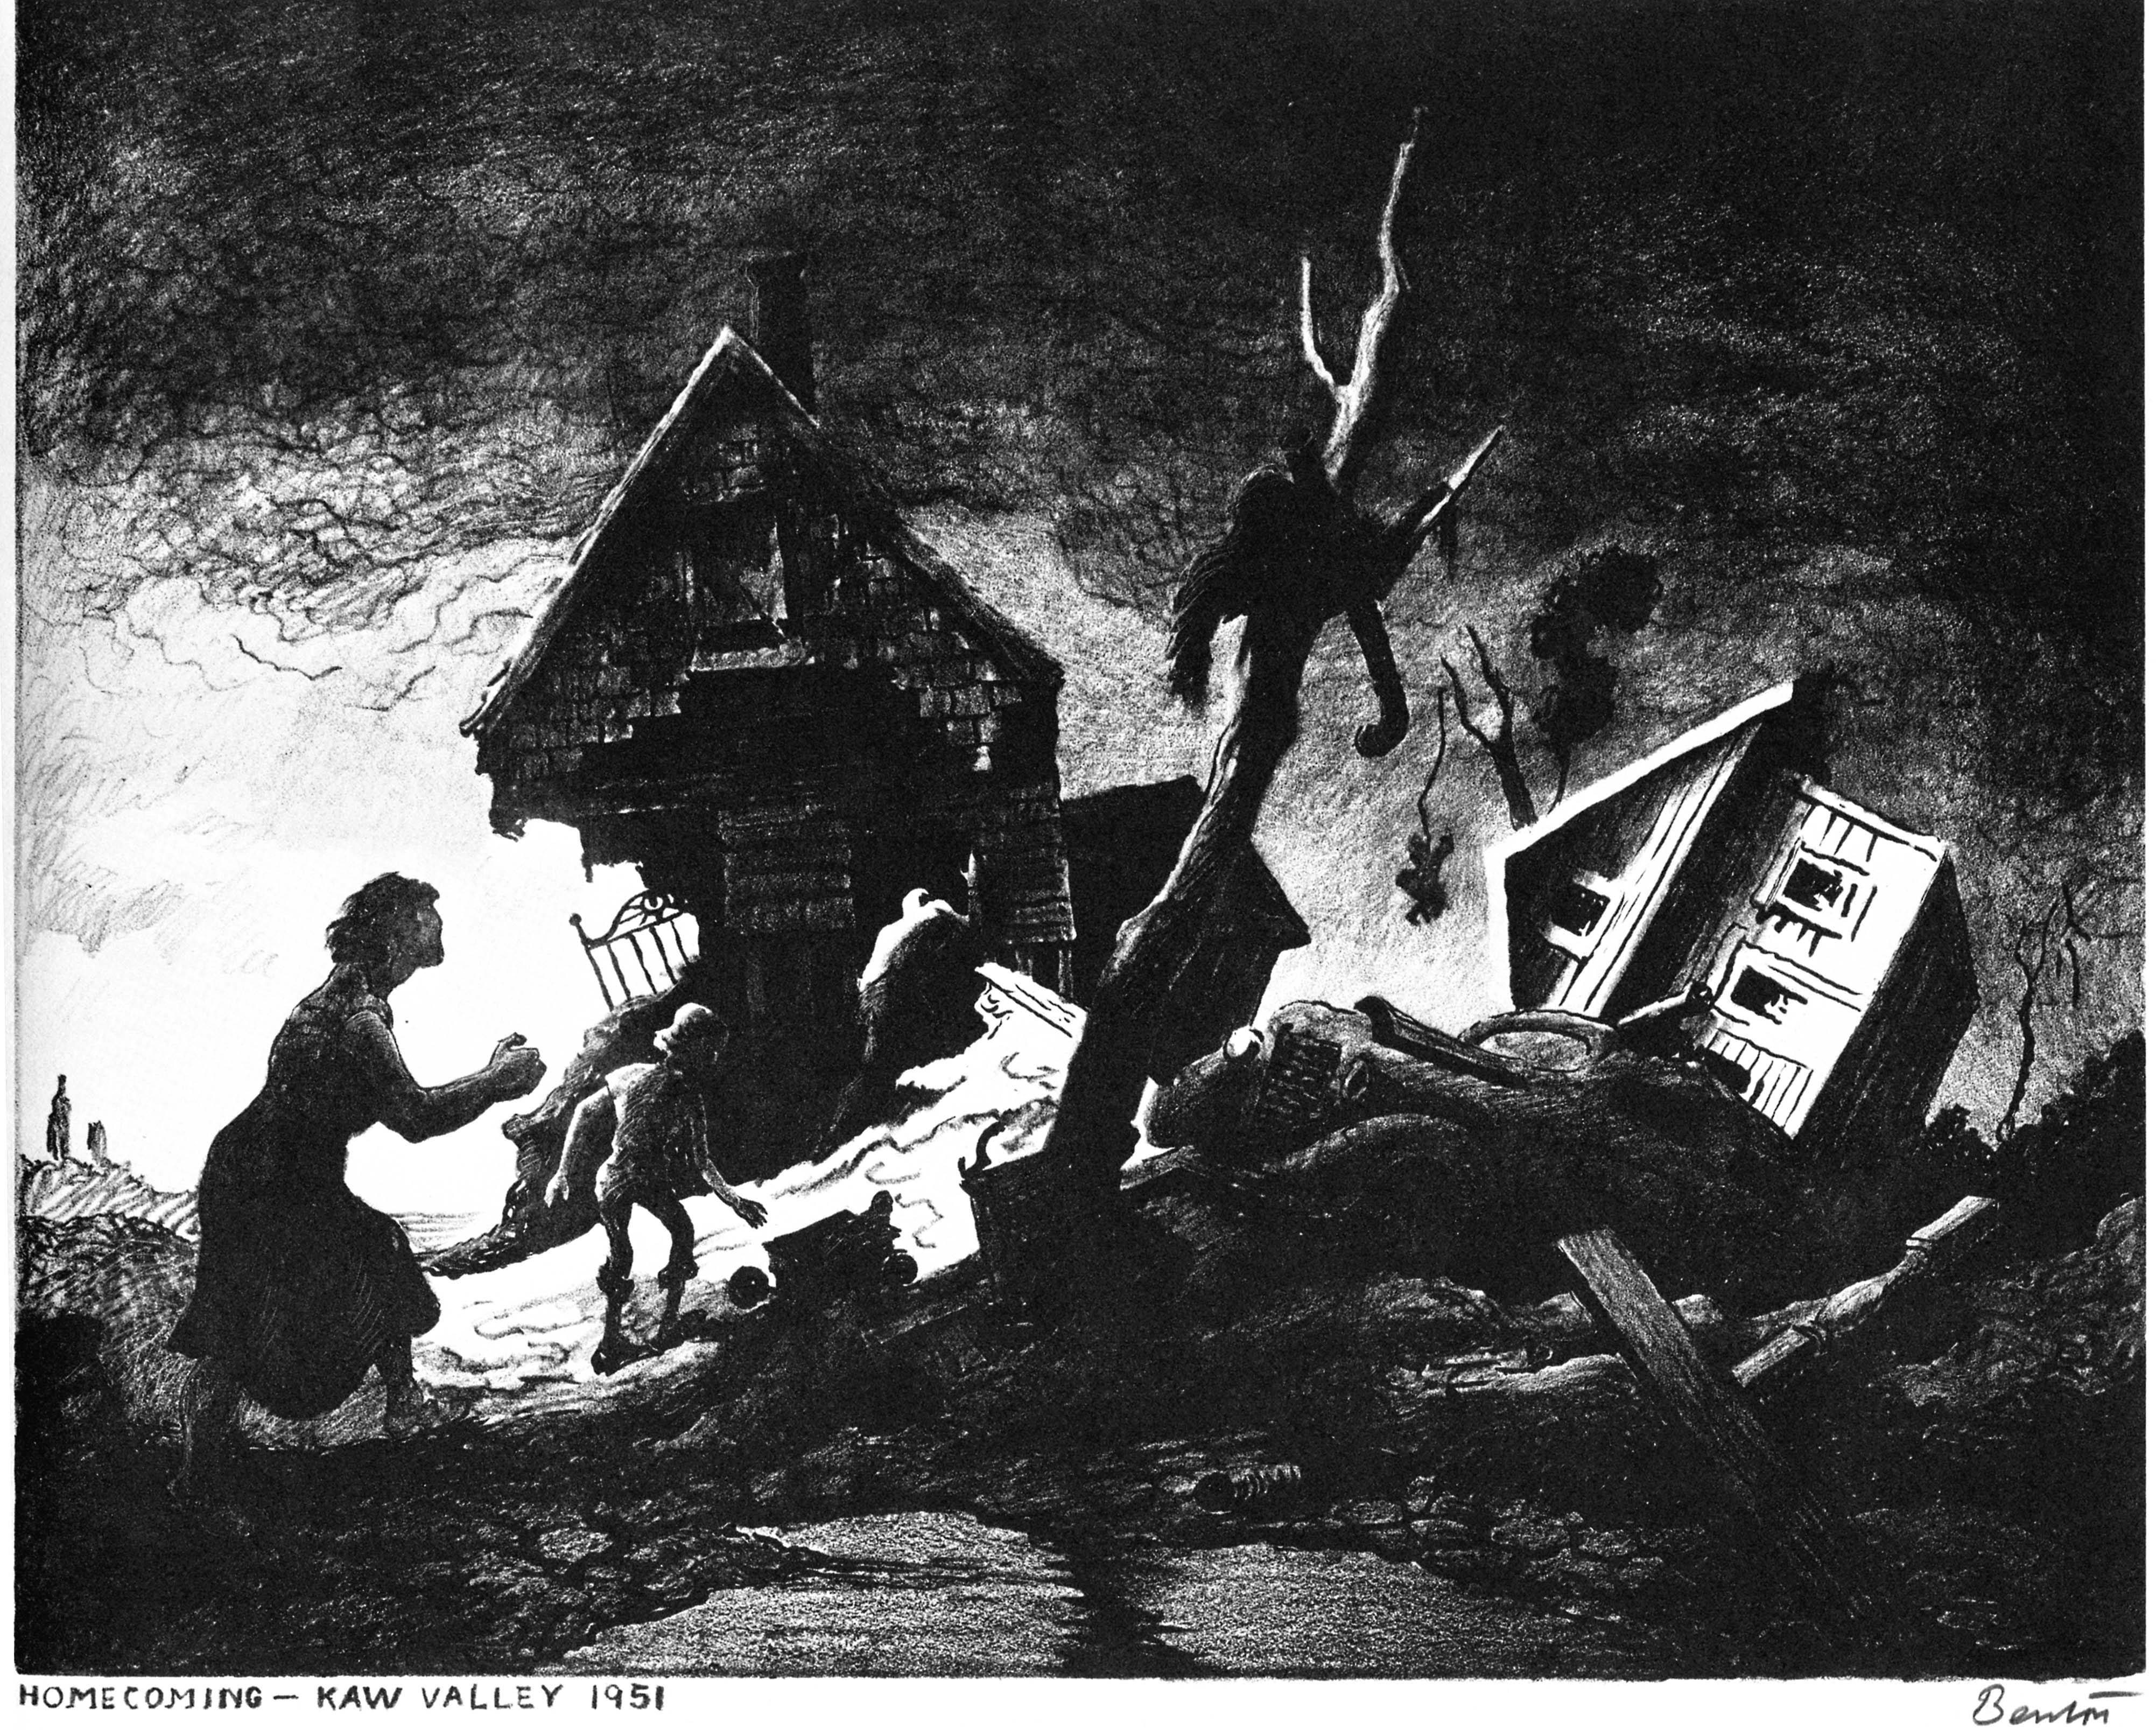 Benton's flood lithograph